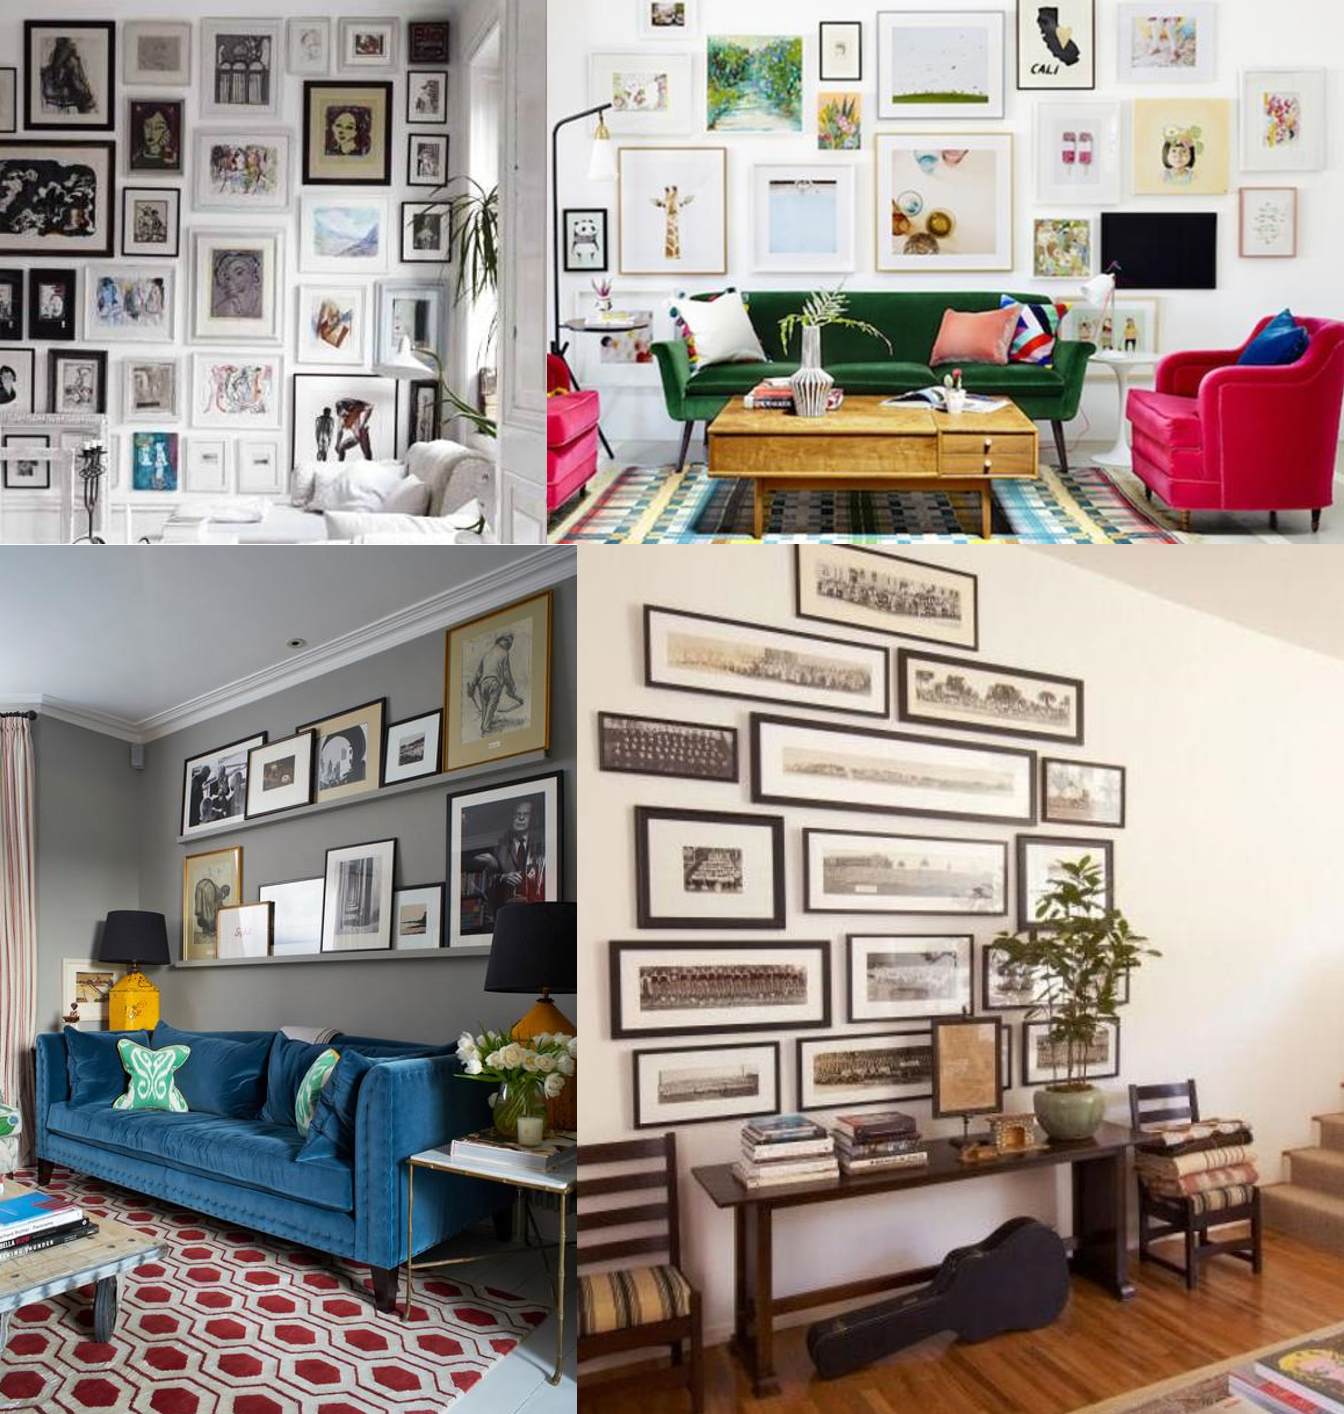 33 Stunning Picture Framing Ideas Your Home - Frameworks ...